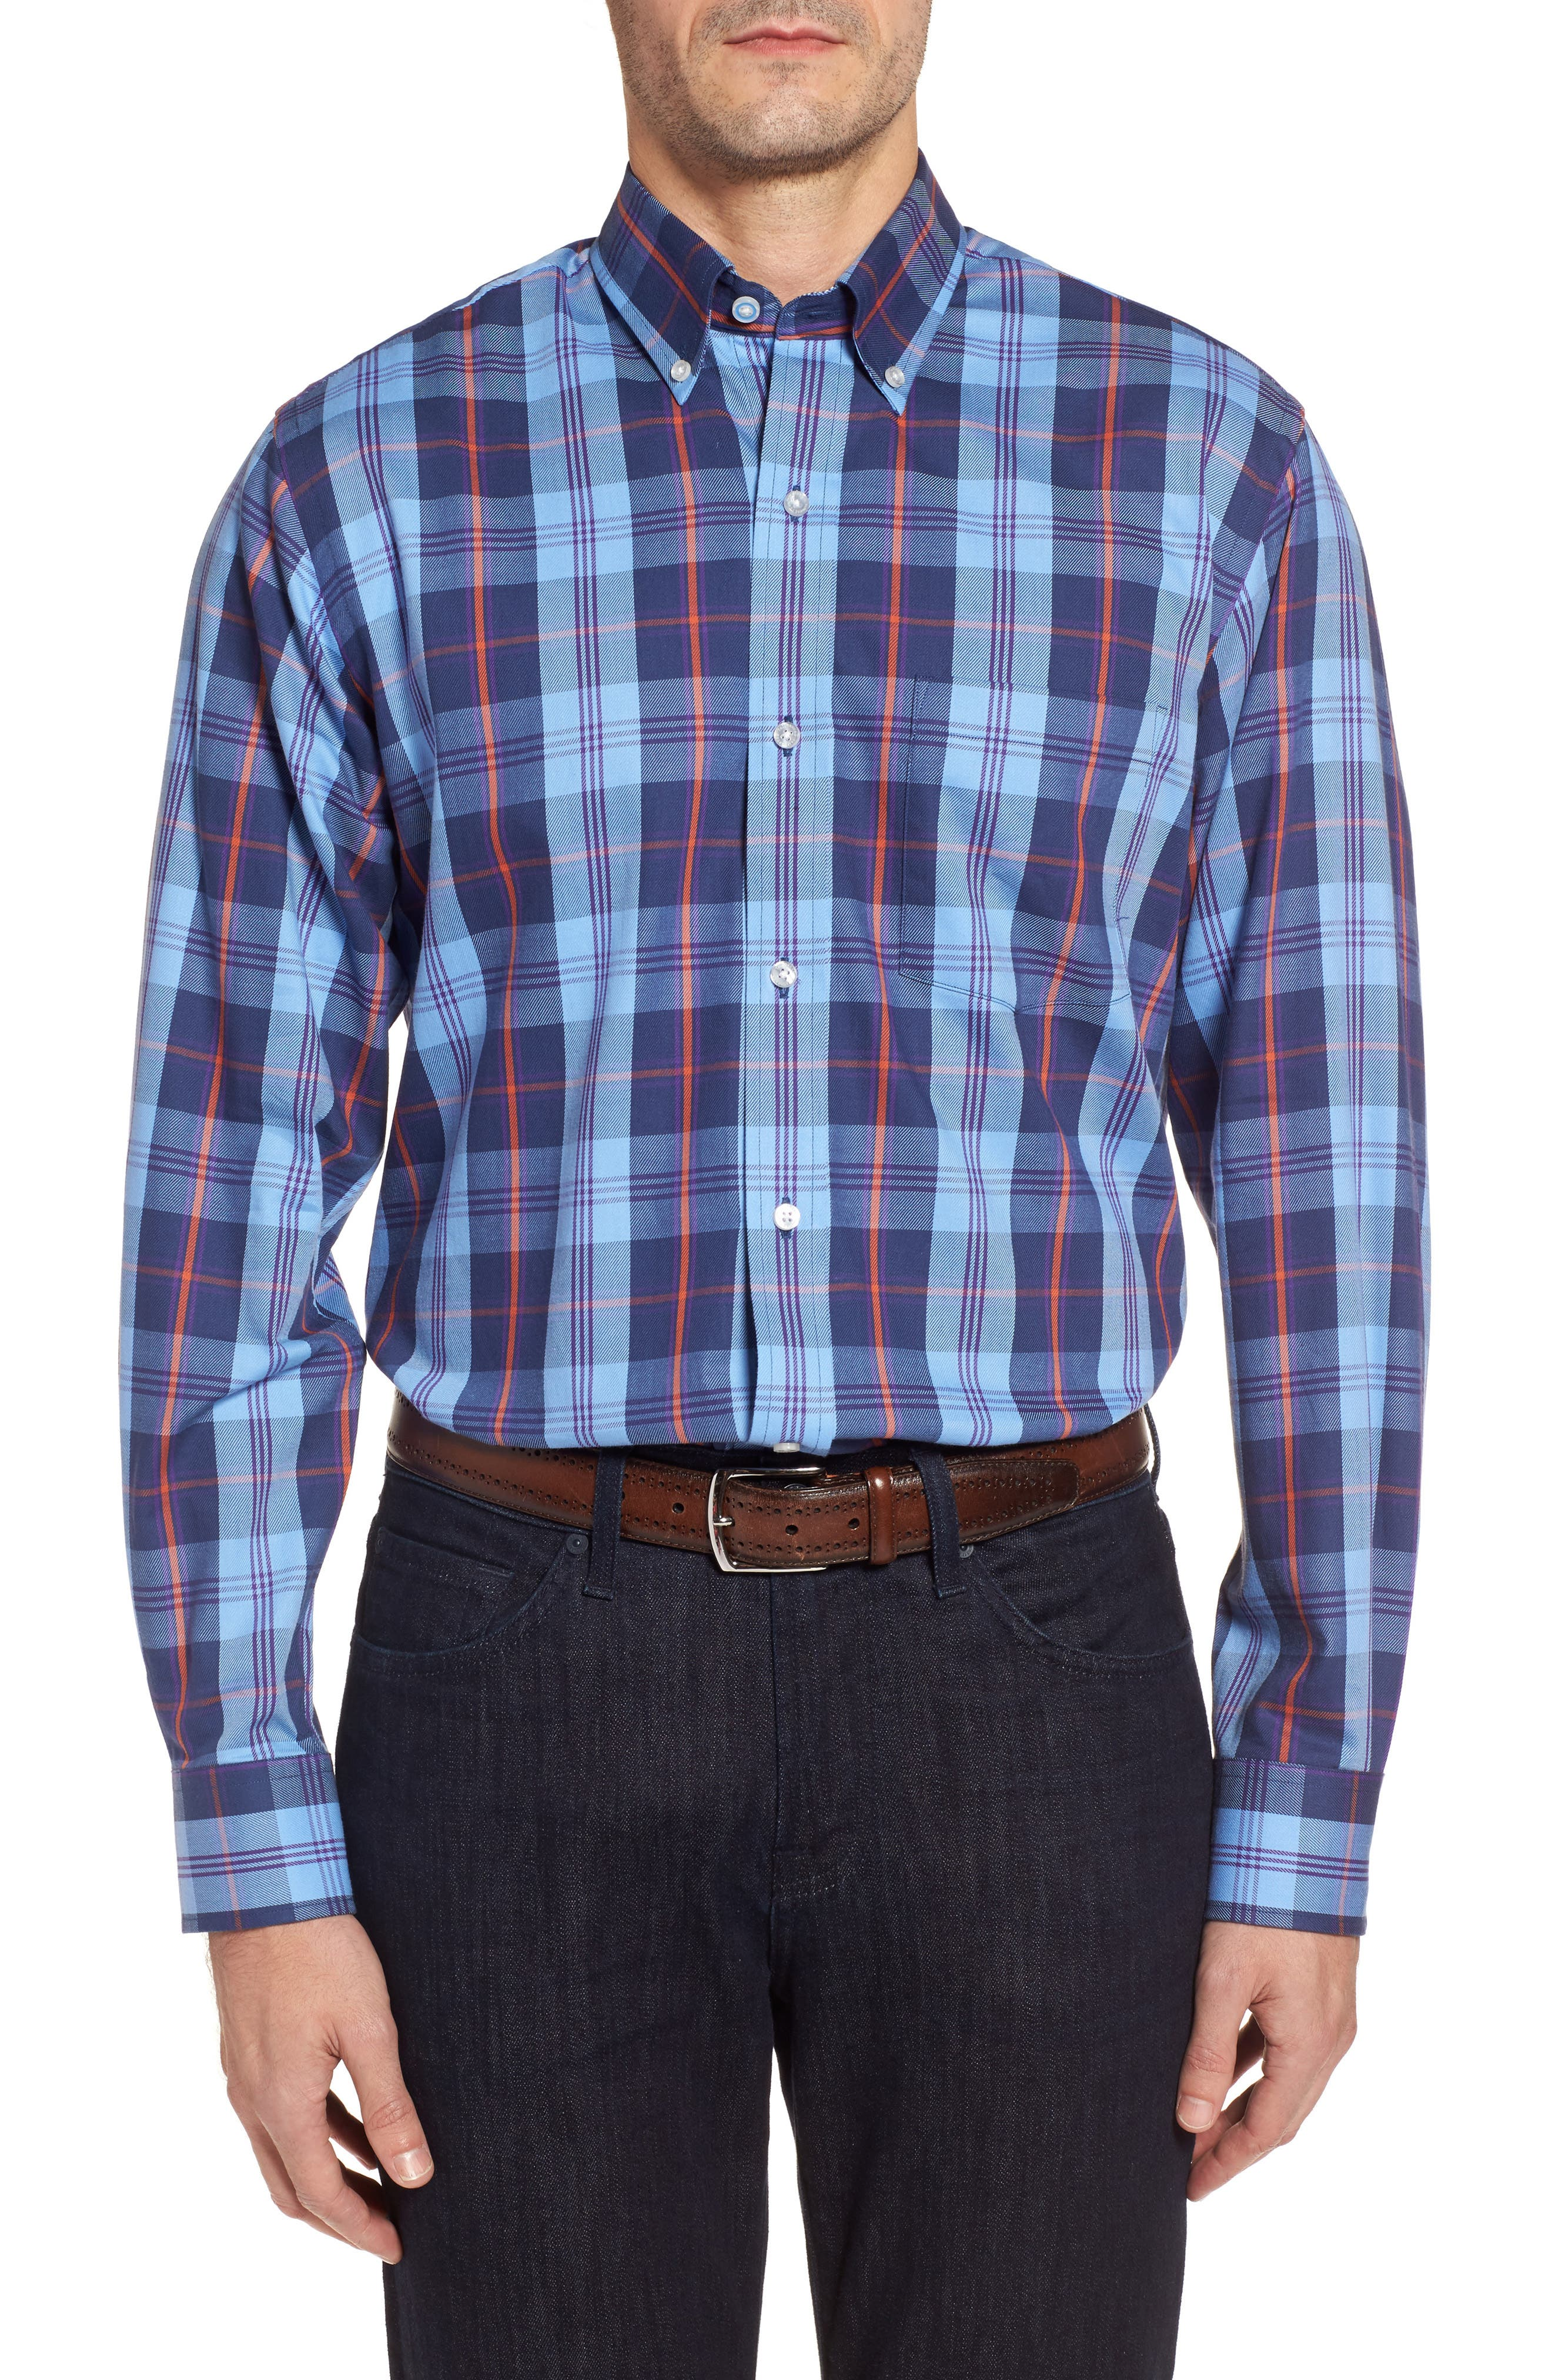 TailorByrd Delcambre Plaid Twill Sport Shirt